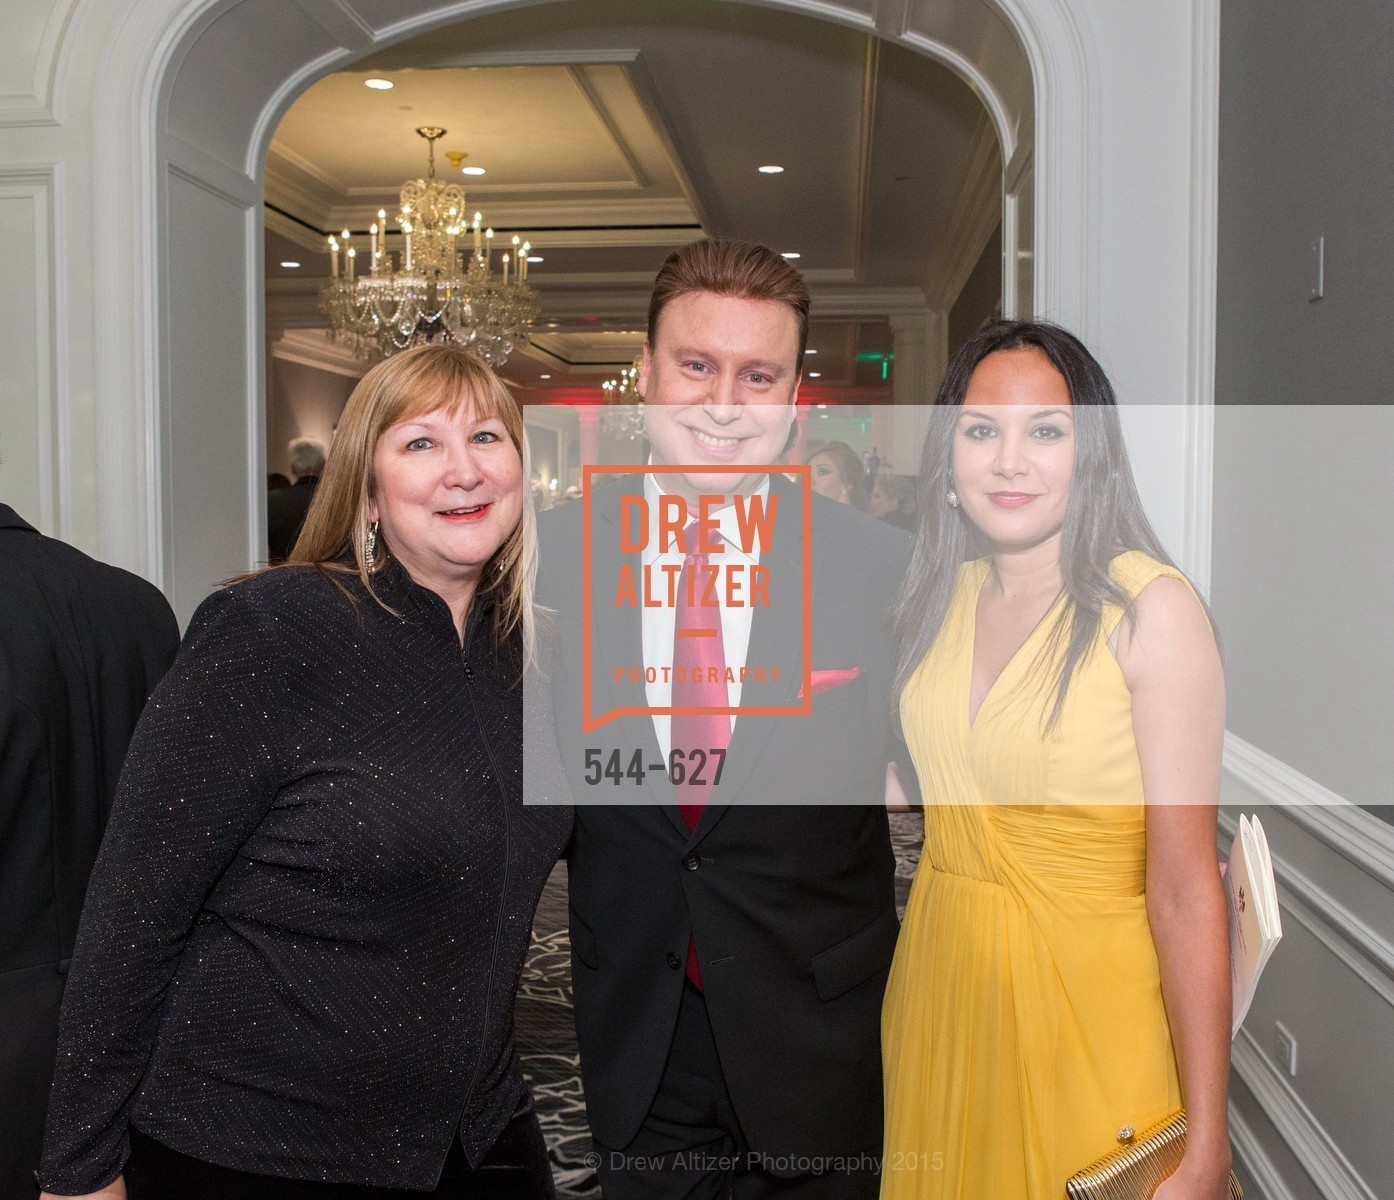 Veronica Labeau, Doug Waggener, Bahya Oumil-Murad, Sovereign Order Of St John of Jerusalem Knights Hospitaller Gala, Ritz Carlton San Francisco, December 5th, 2015,Drew Altizer, Drew Altizer Photography, full-service agency, private events, San Francisco photographer, photographer california